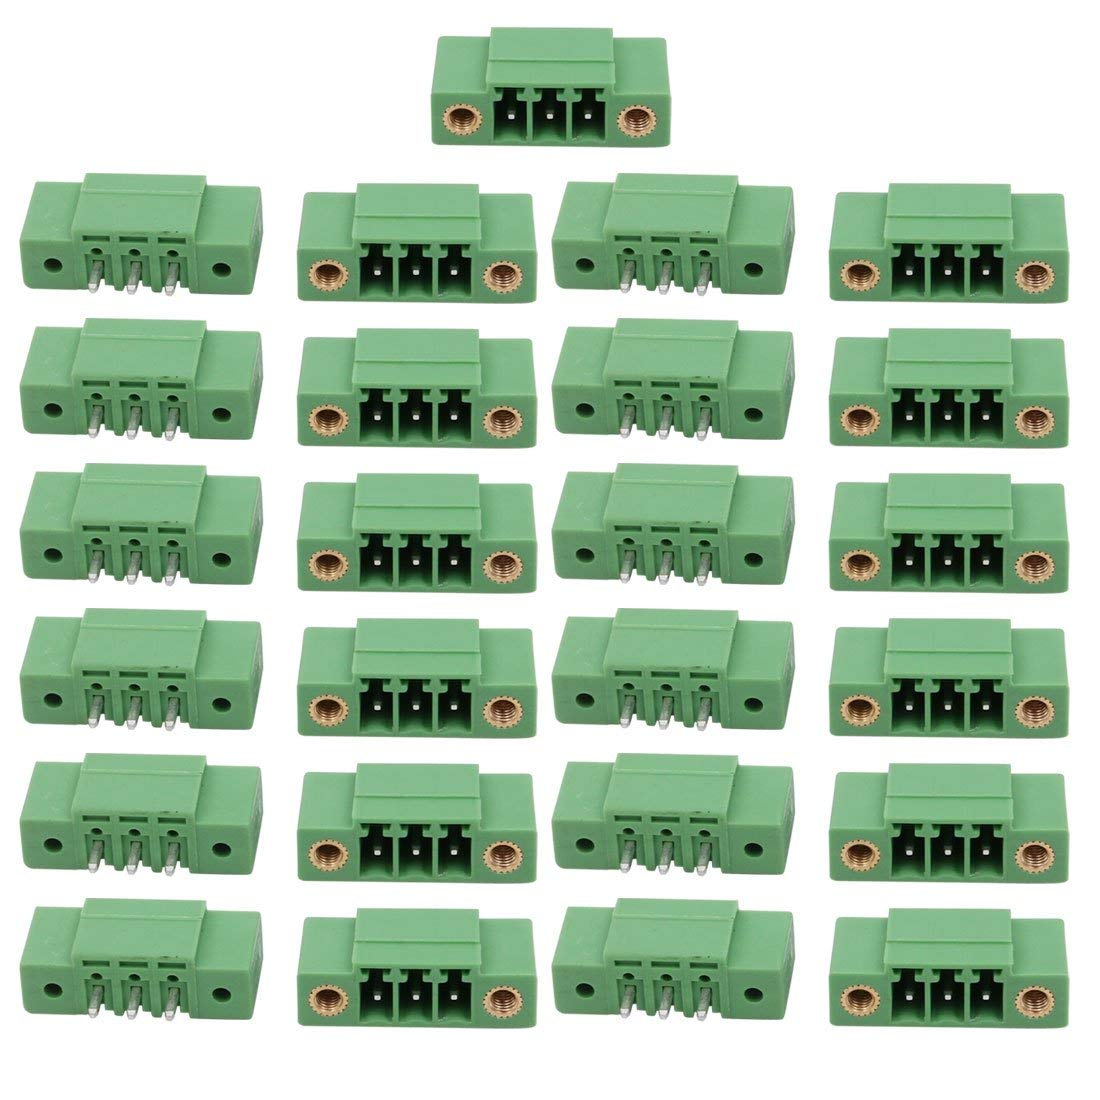 uxcell 25Pcs LZ1VM AC300V 8A 3.5mm Pitch 3P PCB Terminal Block Wire Connection